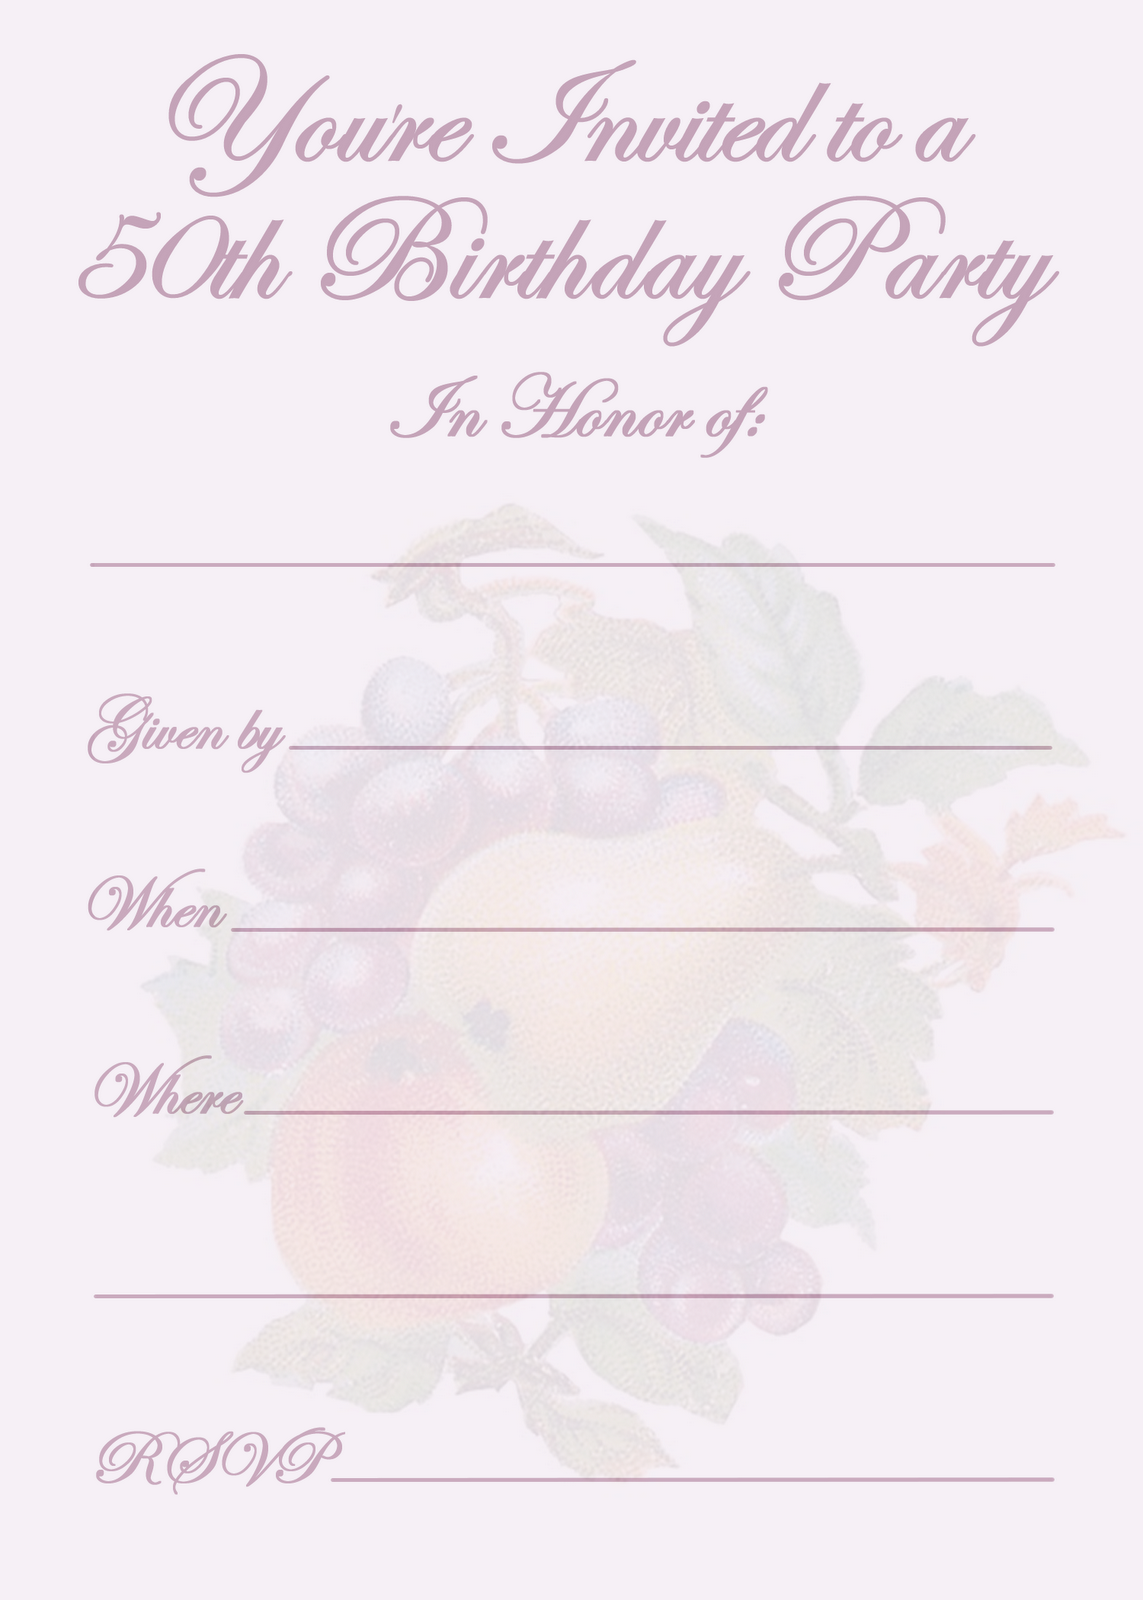 It is an image of Free Printable 50th Birthday Invitations inside editable